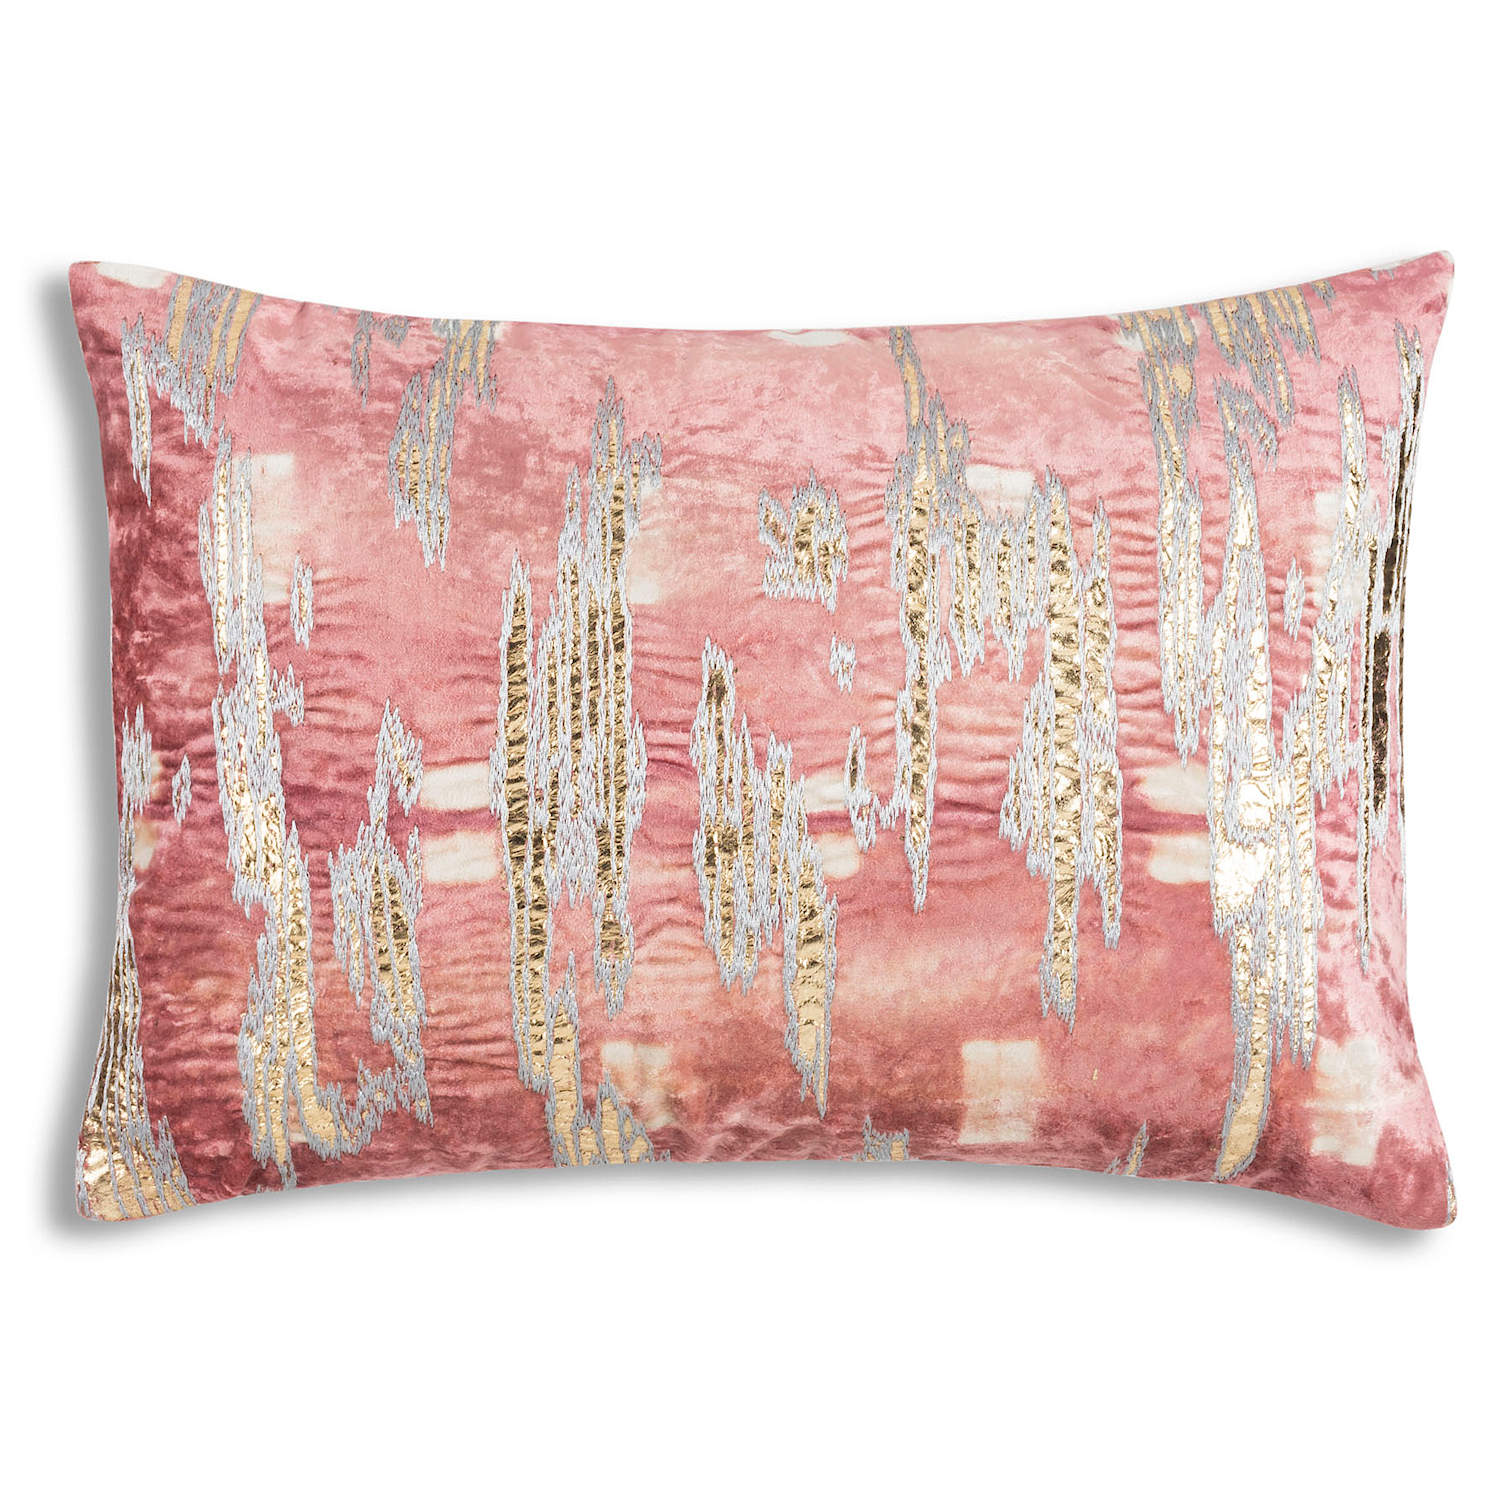 blush home decor.htm  cloud9 design boheme blush decorative pillows   cloud9 design boheme blush decorative